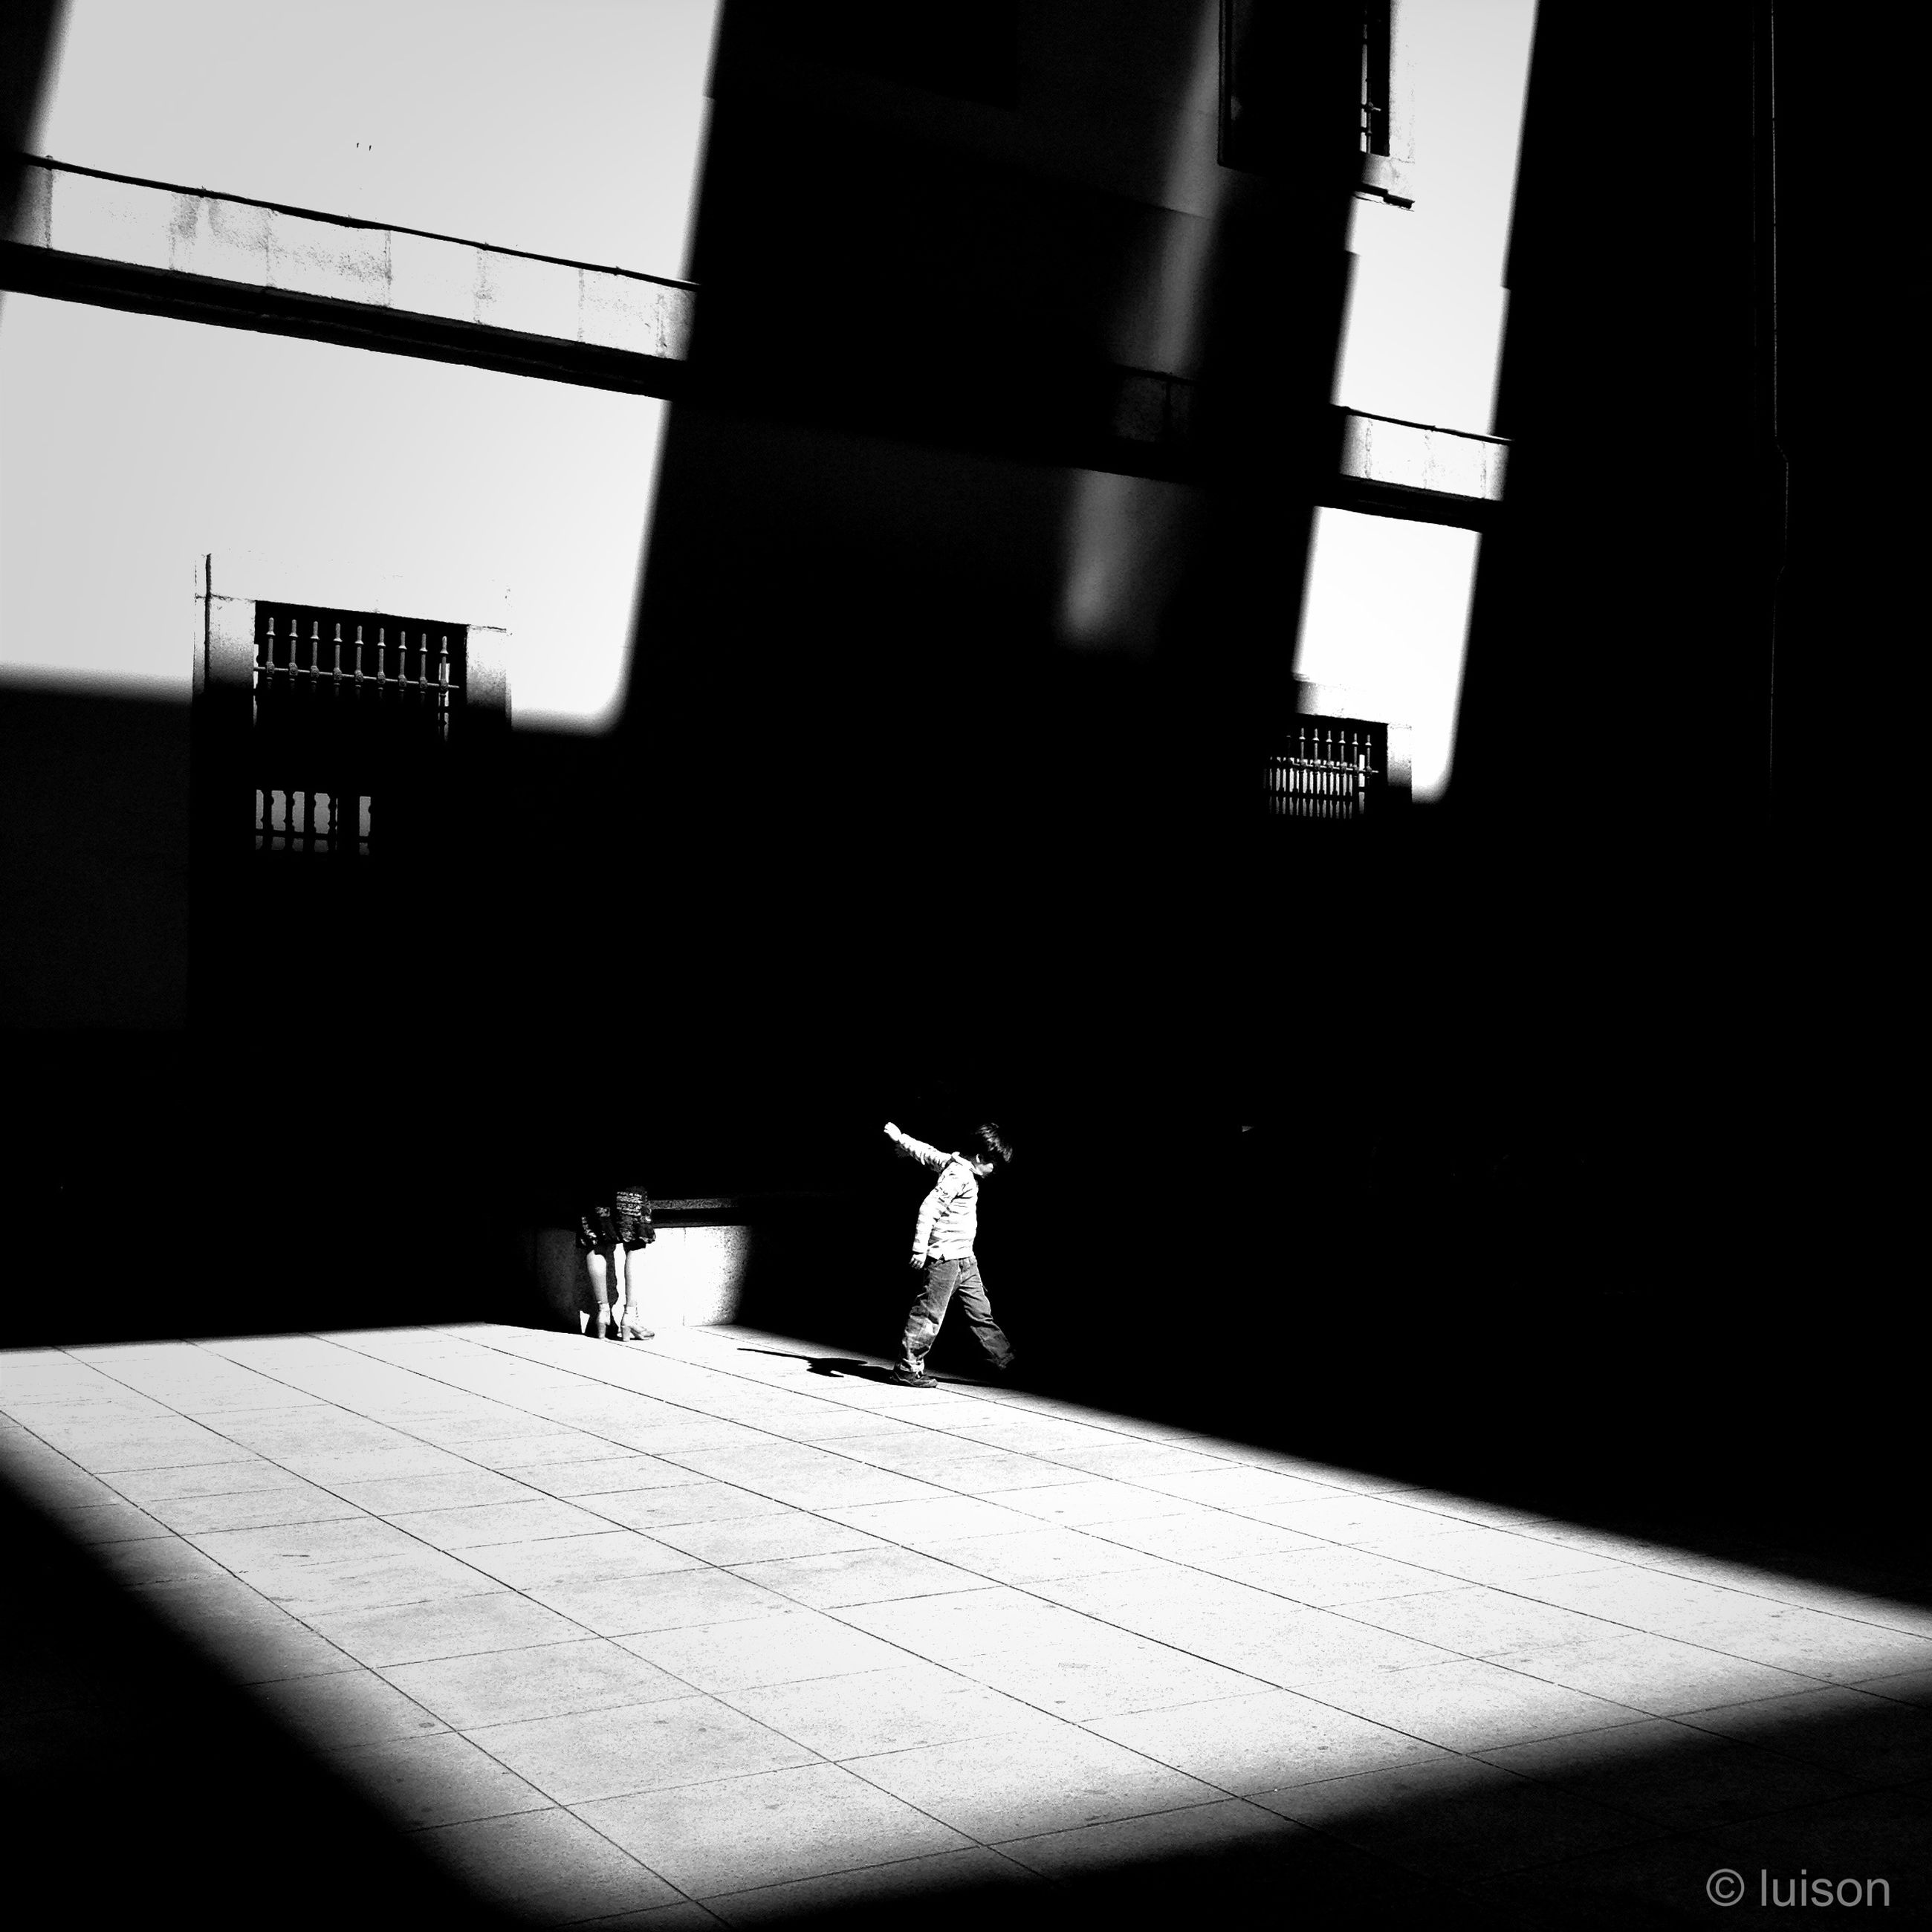 indoors, architecture, built structure, lifestyles, shadow, full length, silhouette, window, men, building exterior, person, leisure activity, wall - building feature, standing, walking, sunlight, wall, day